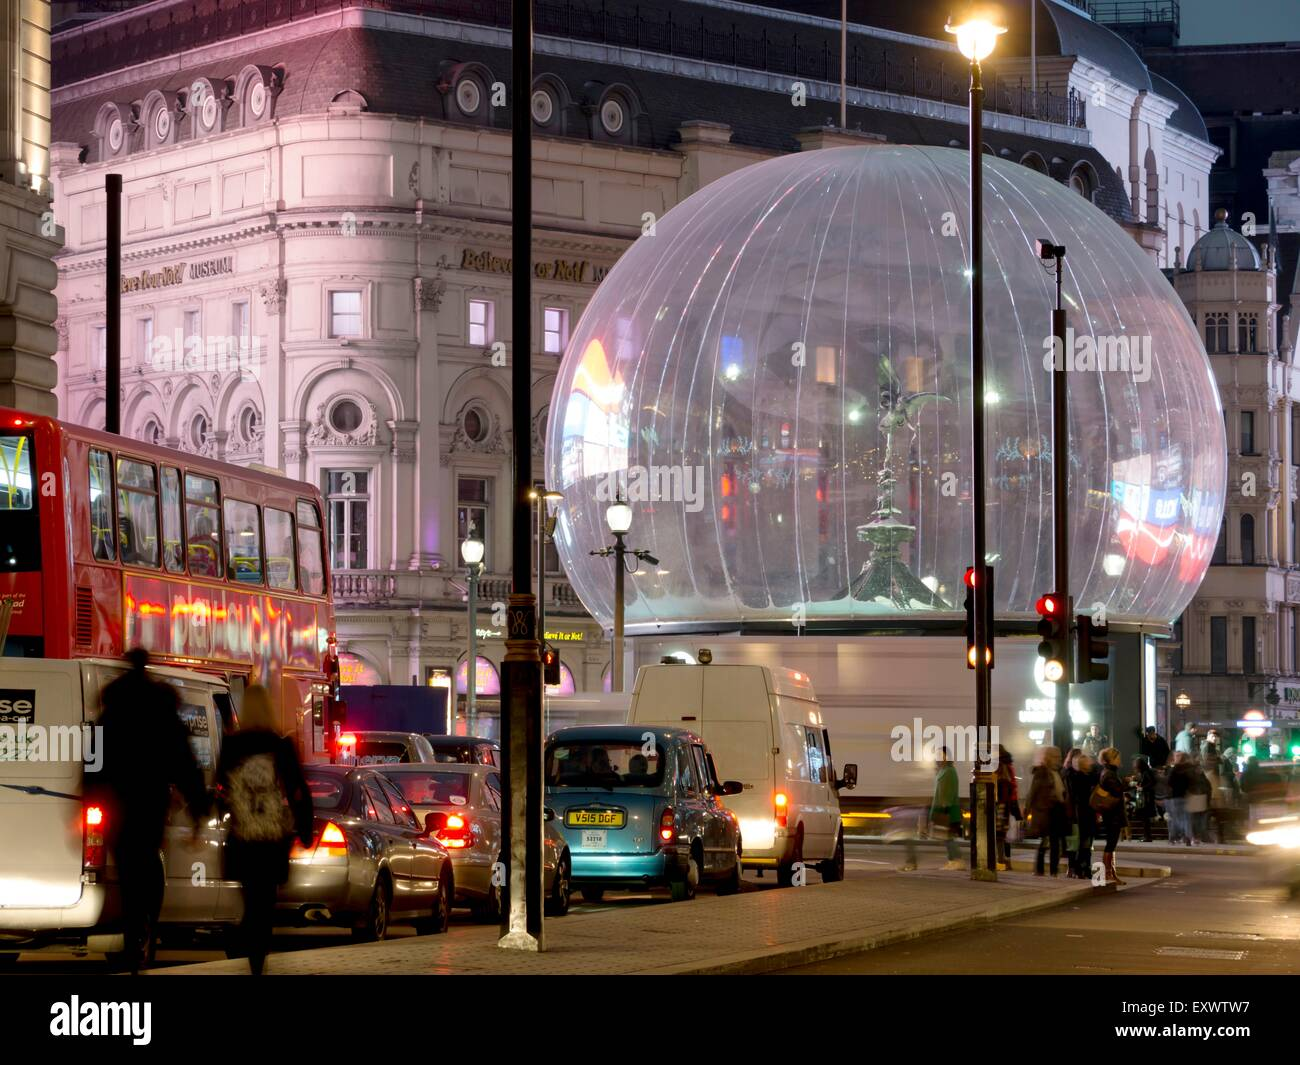 Eros statue at Piccadilly Circus in transparent ball, London, England, UK - Stock Image